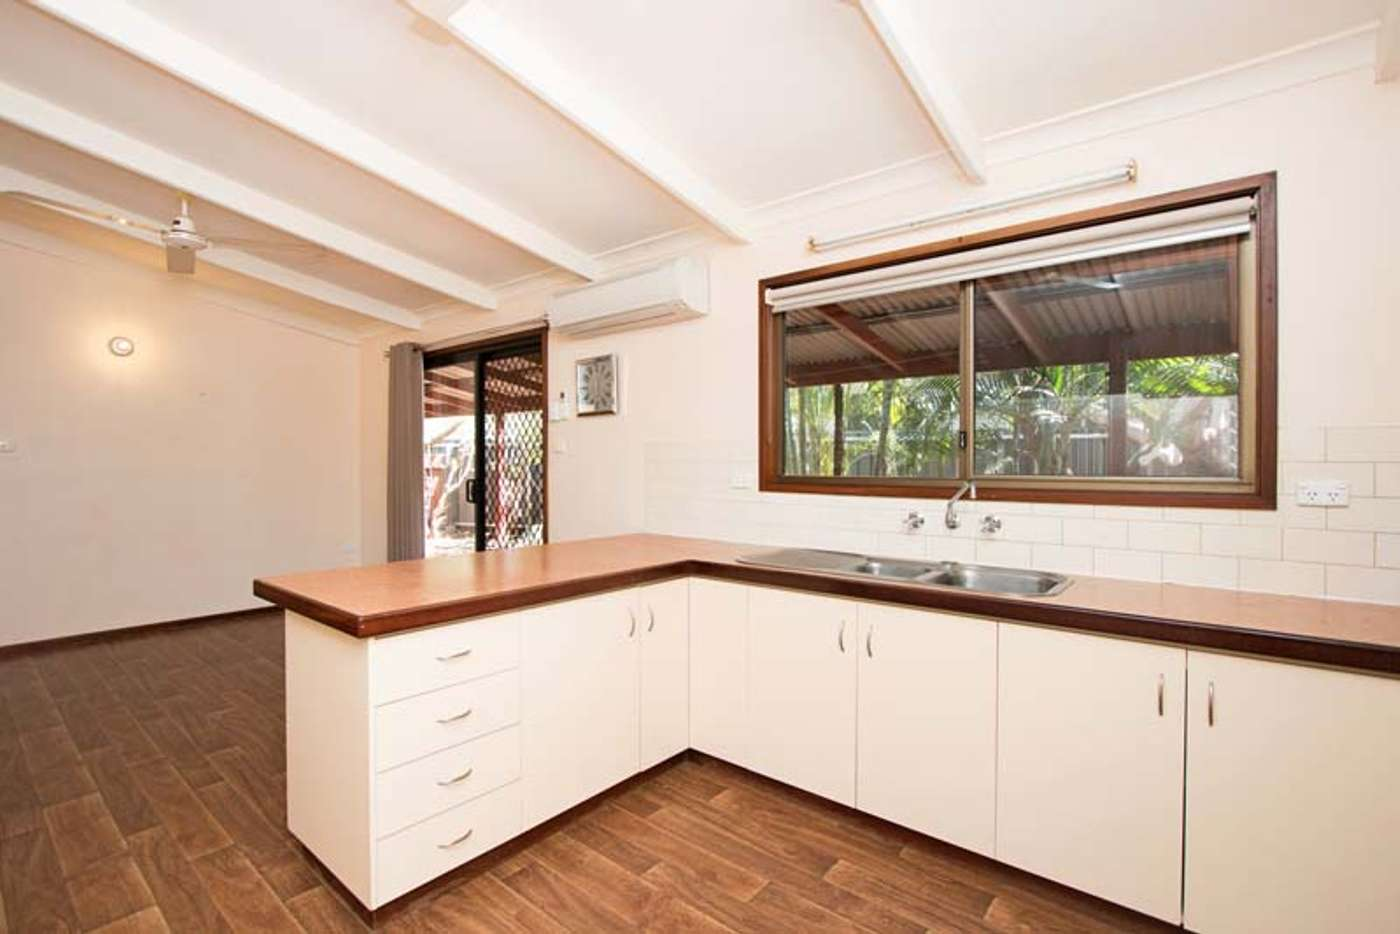 Main view of Homely house listing, 1 Miller Way, Broome WA 6725